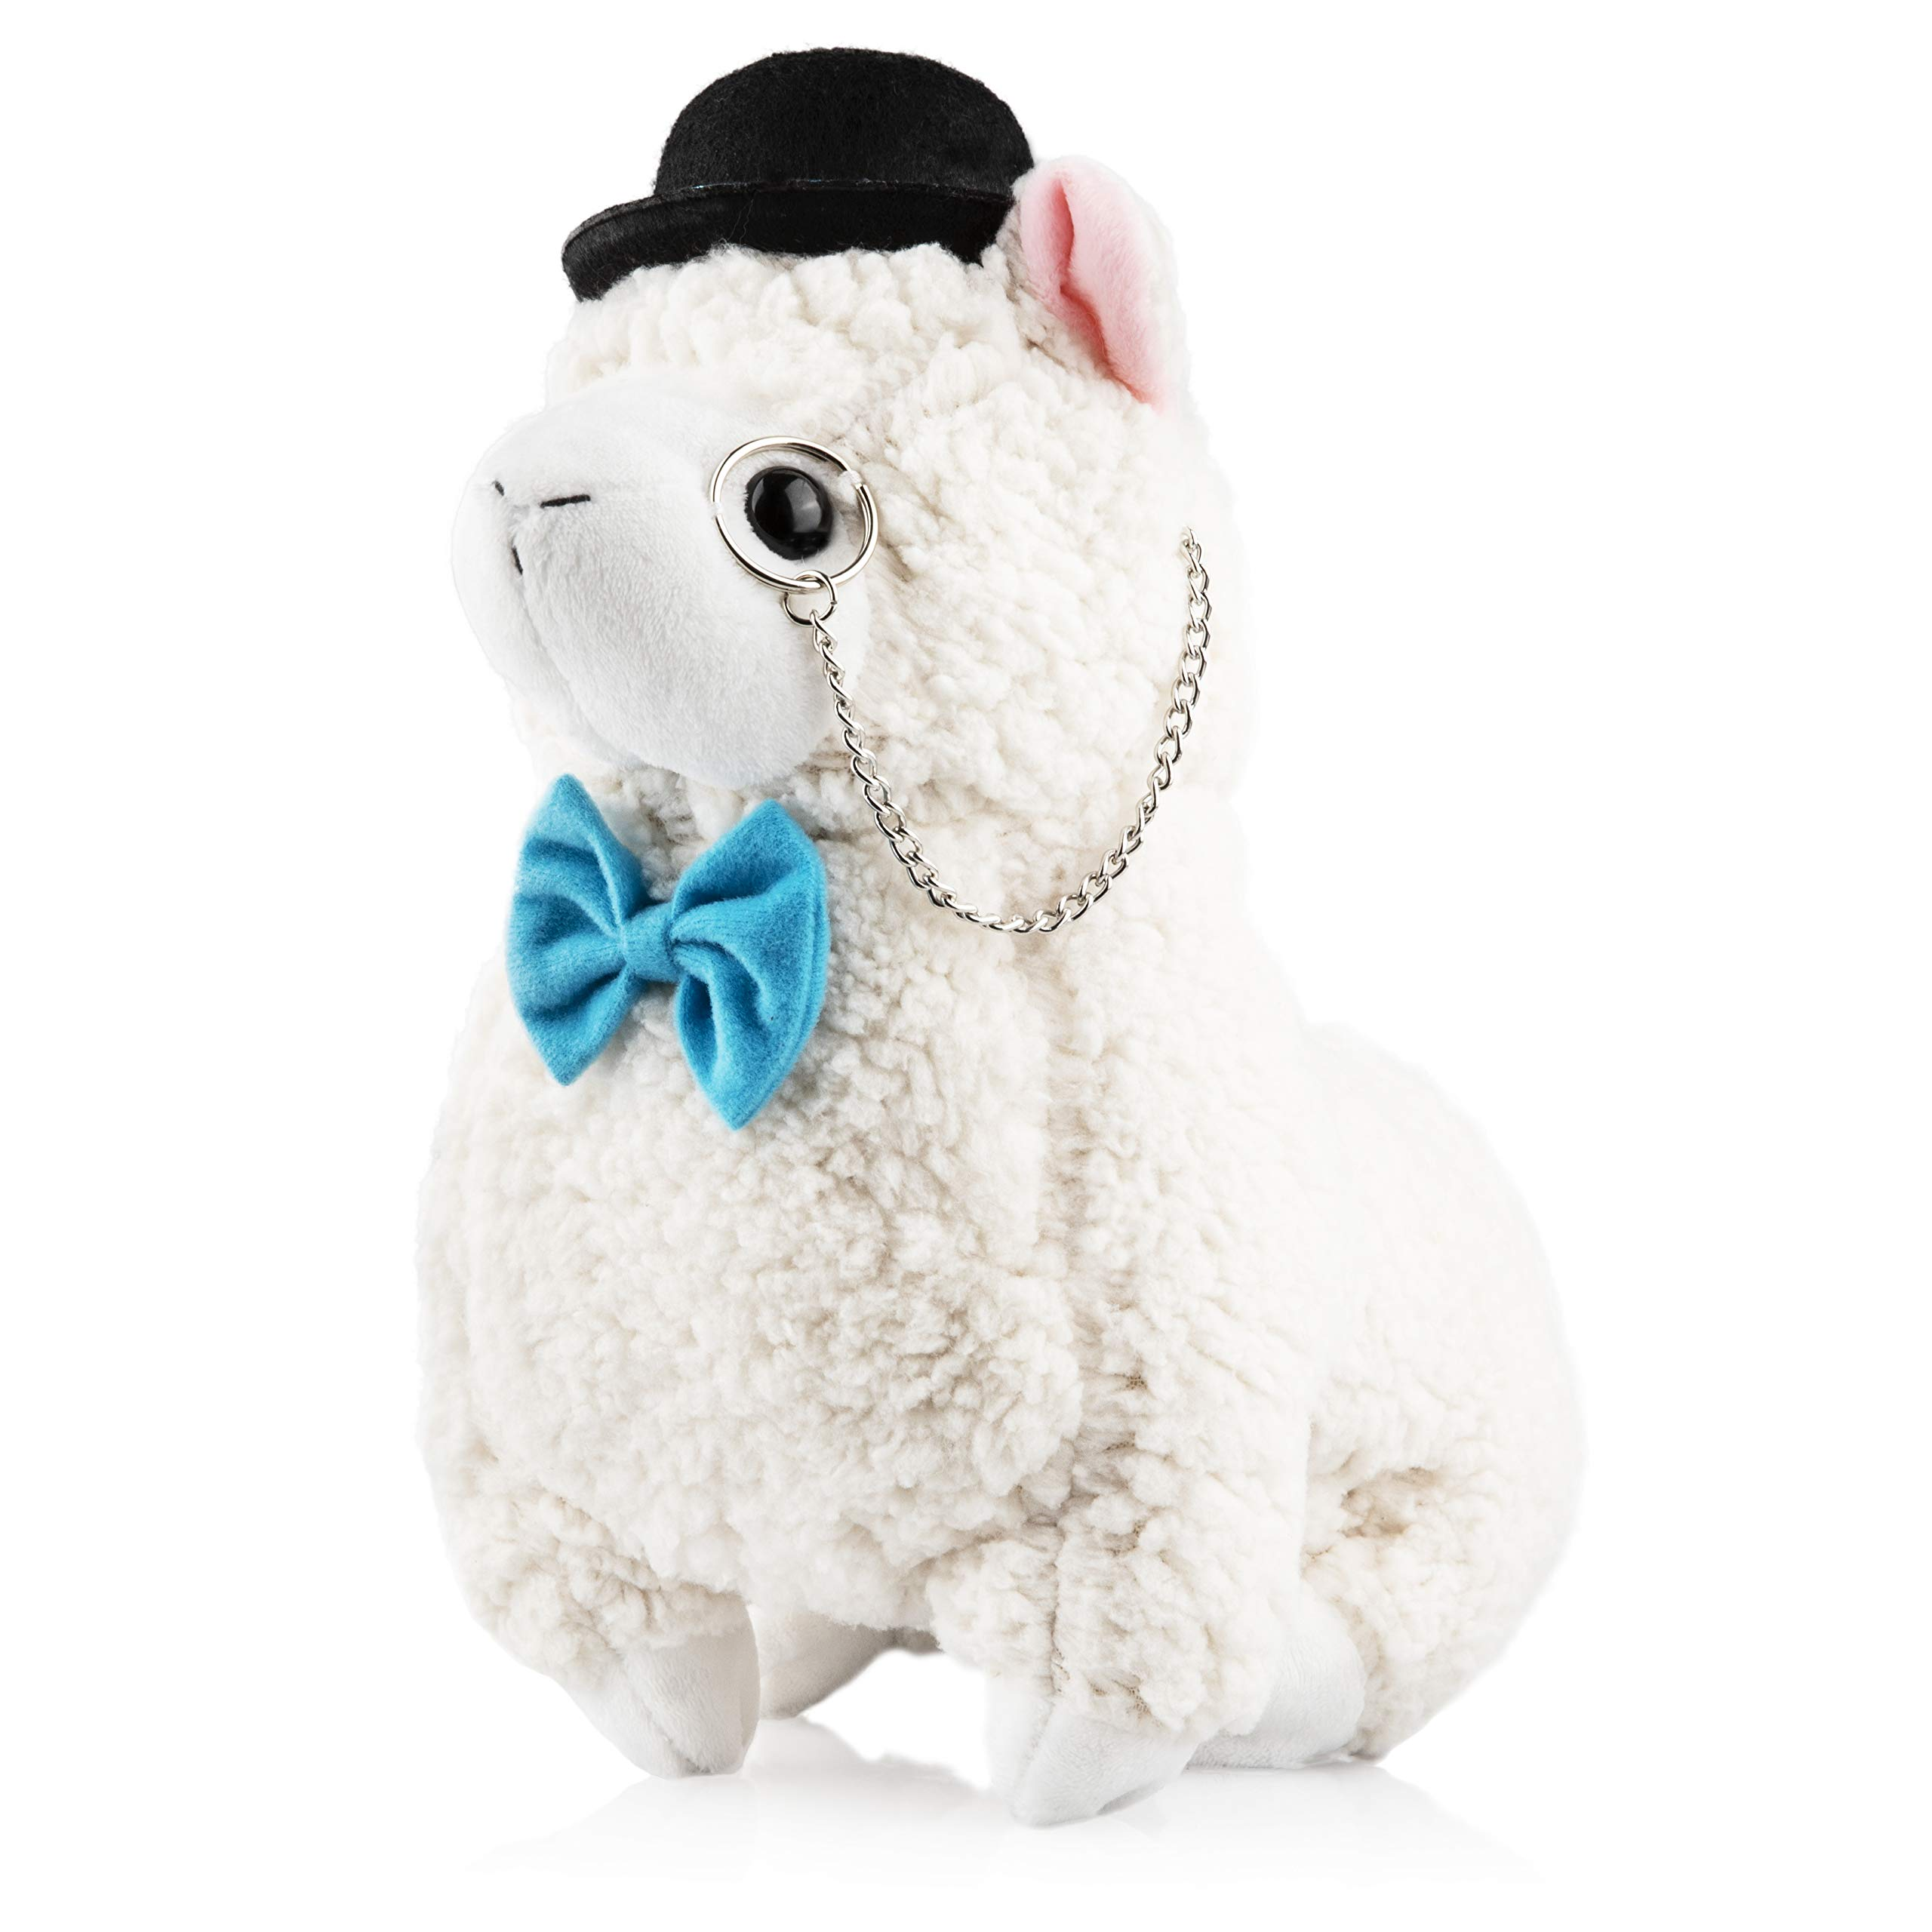 Llama Stuffed Animal Plush Fancy Friend: Cute & Funny Llama Plush with Monocle & Bowtie for Children or Adults - Perfect Party Gift or Bedtime Friend for Boys & Girls - 14 Inches Tall